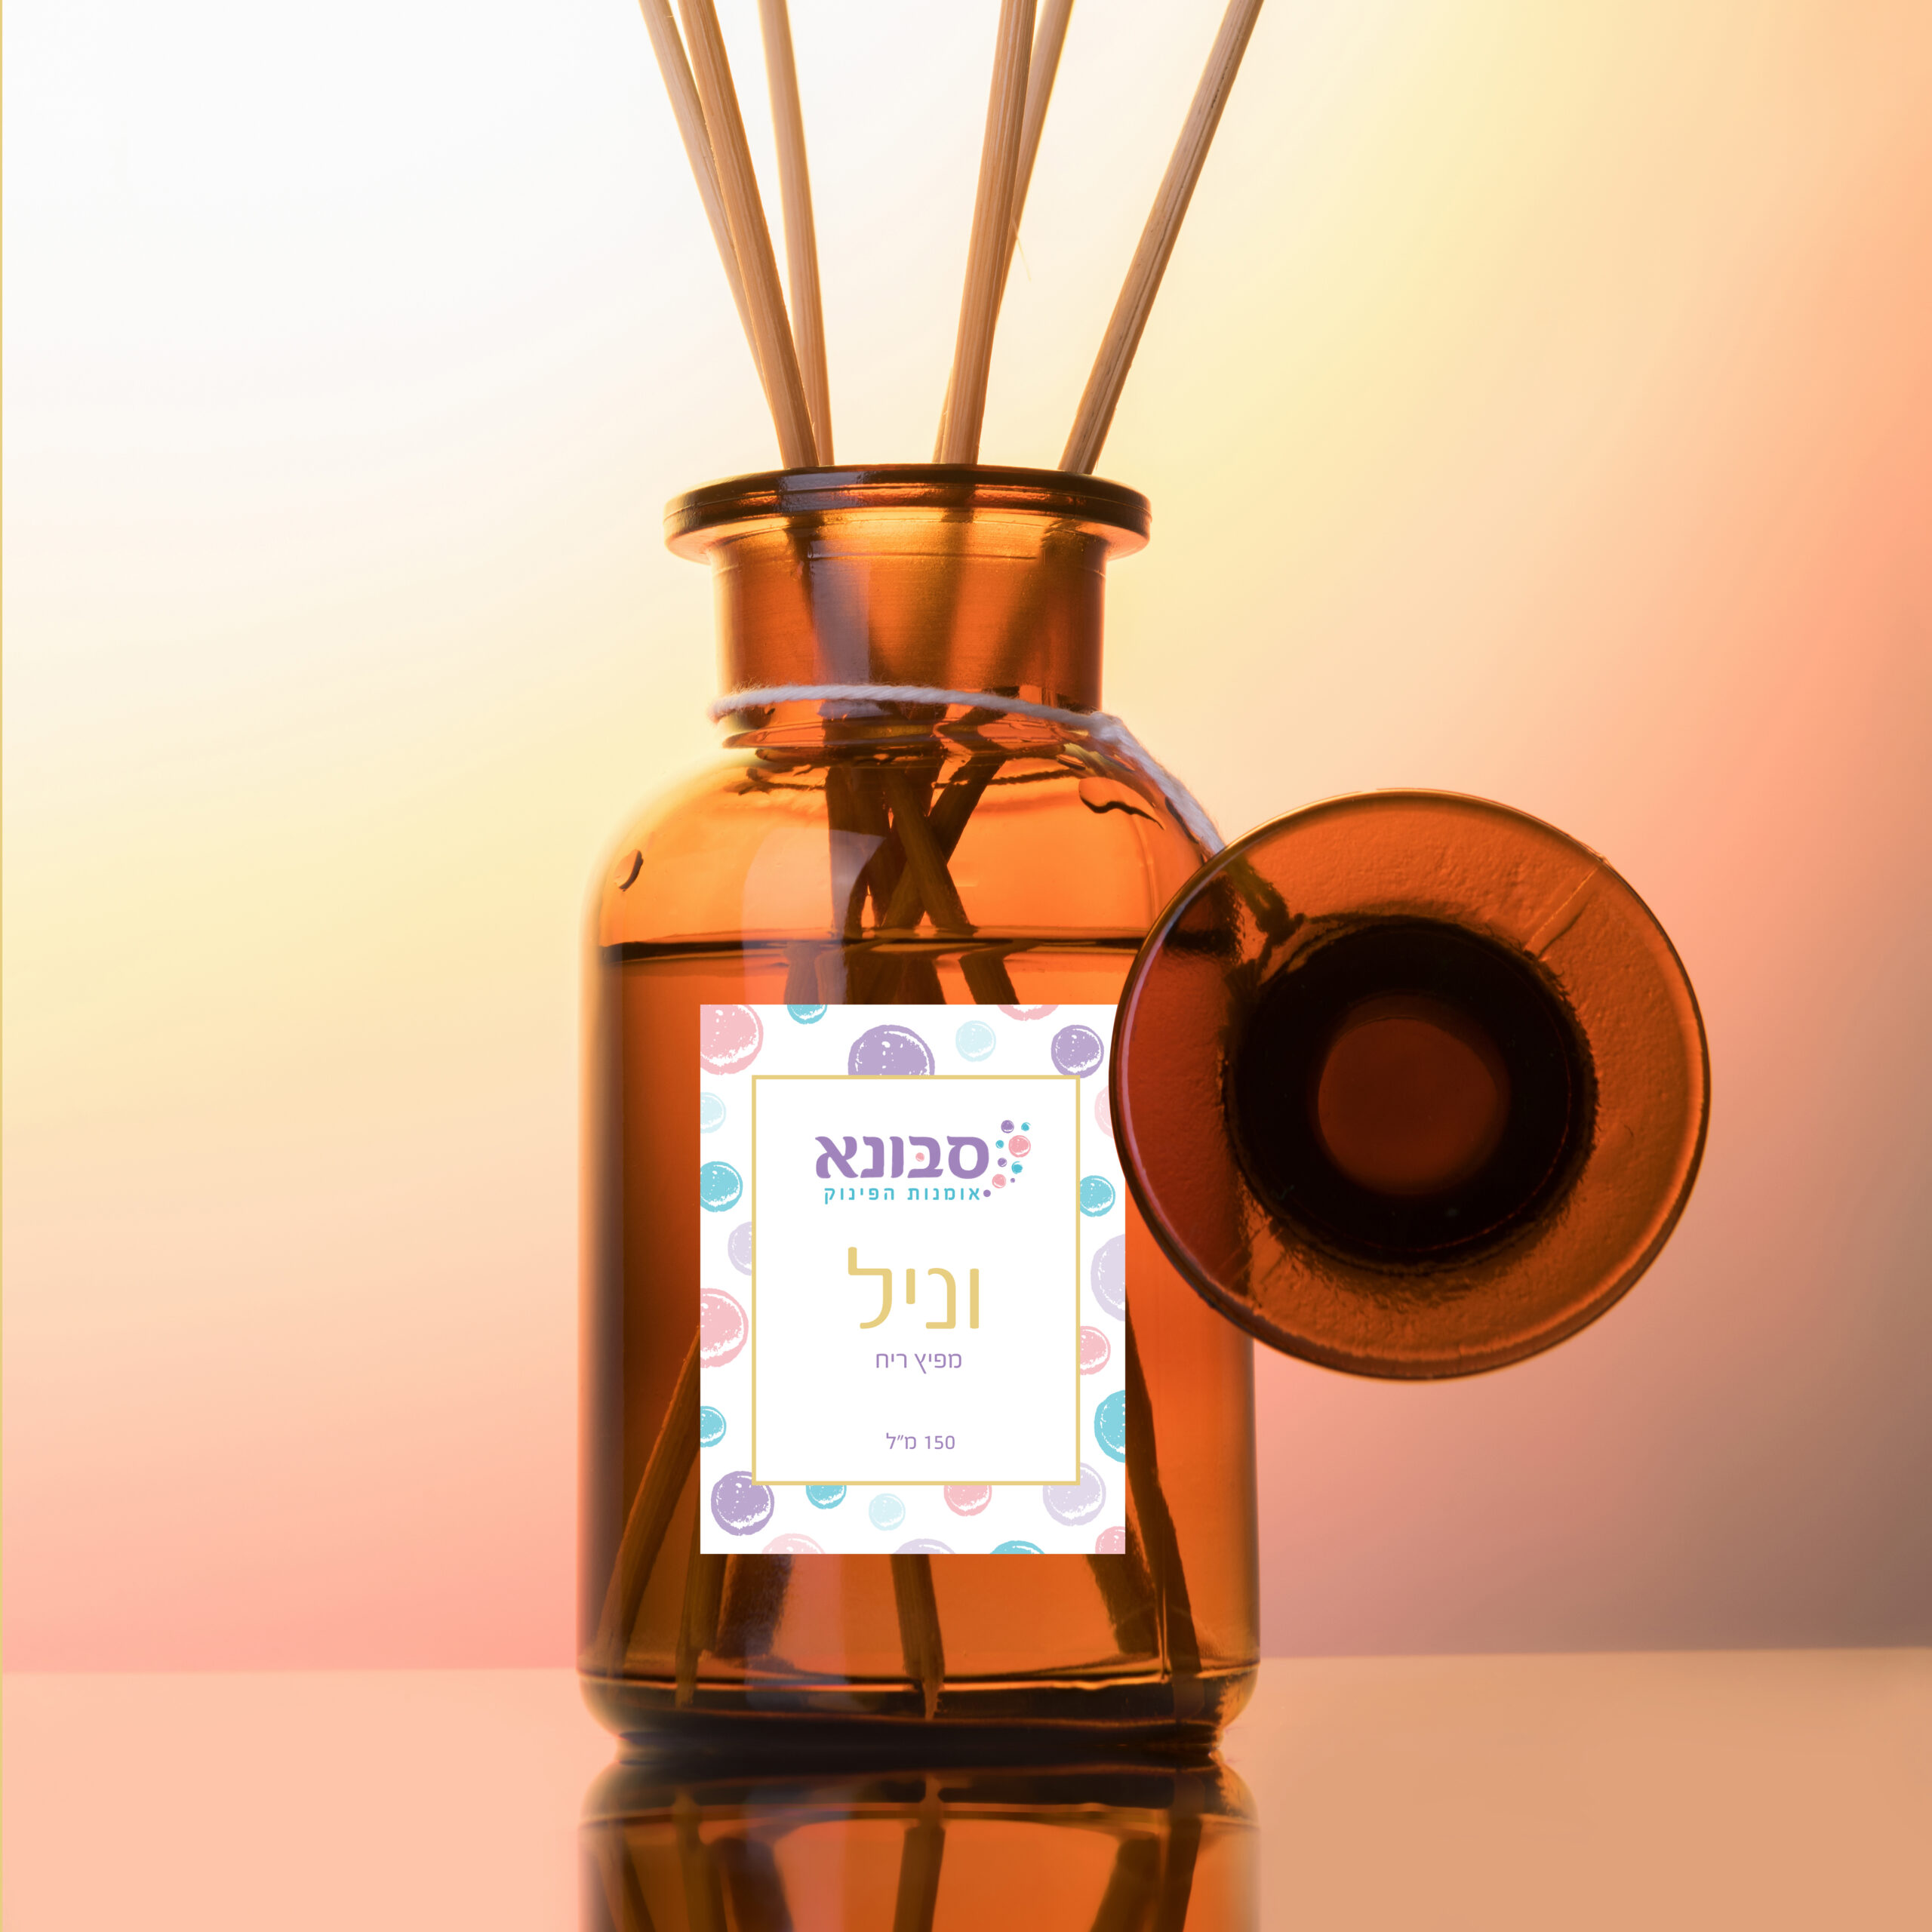 Air refresher bottle mock up, reed diffuser on a light rose gradiente background. Aromatherapy concept. Home fragrance bottle, european luxury house decor and interior design details